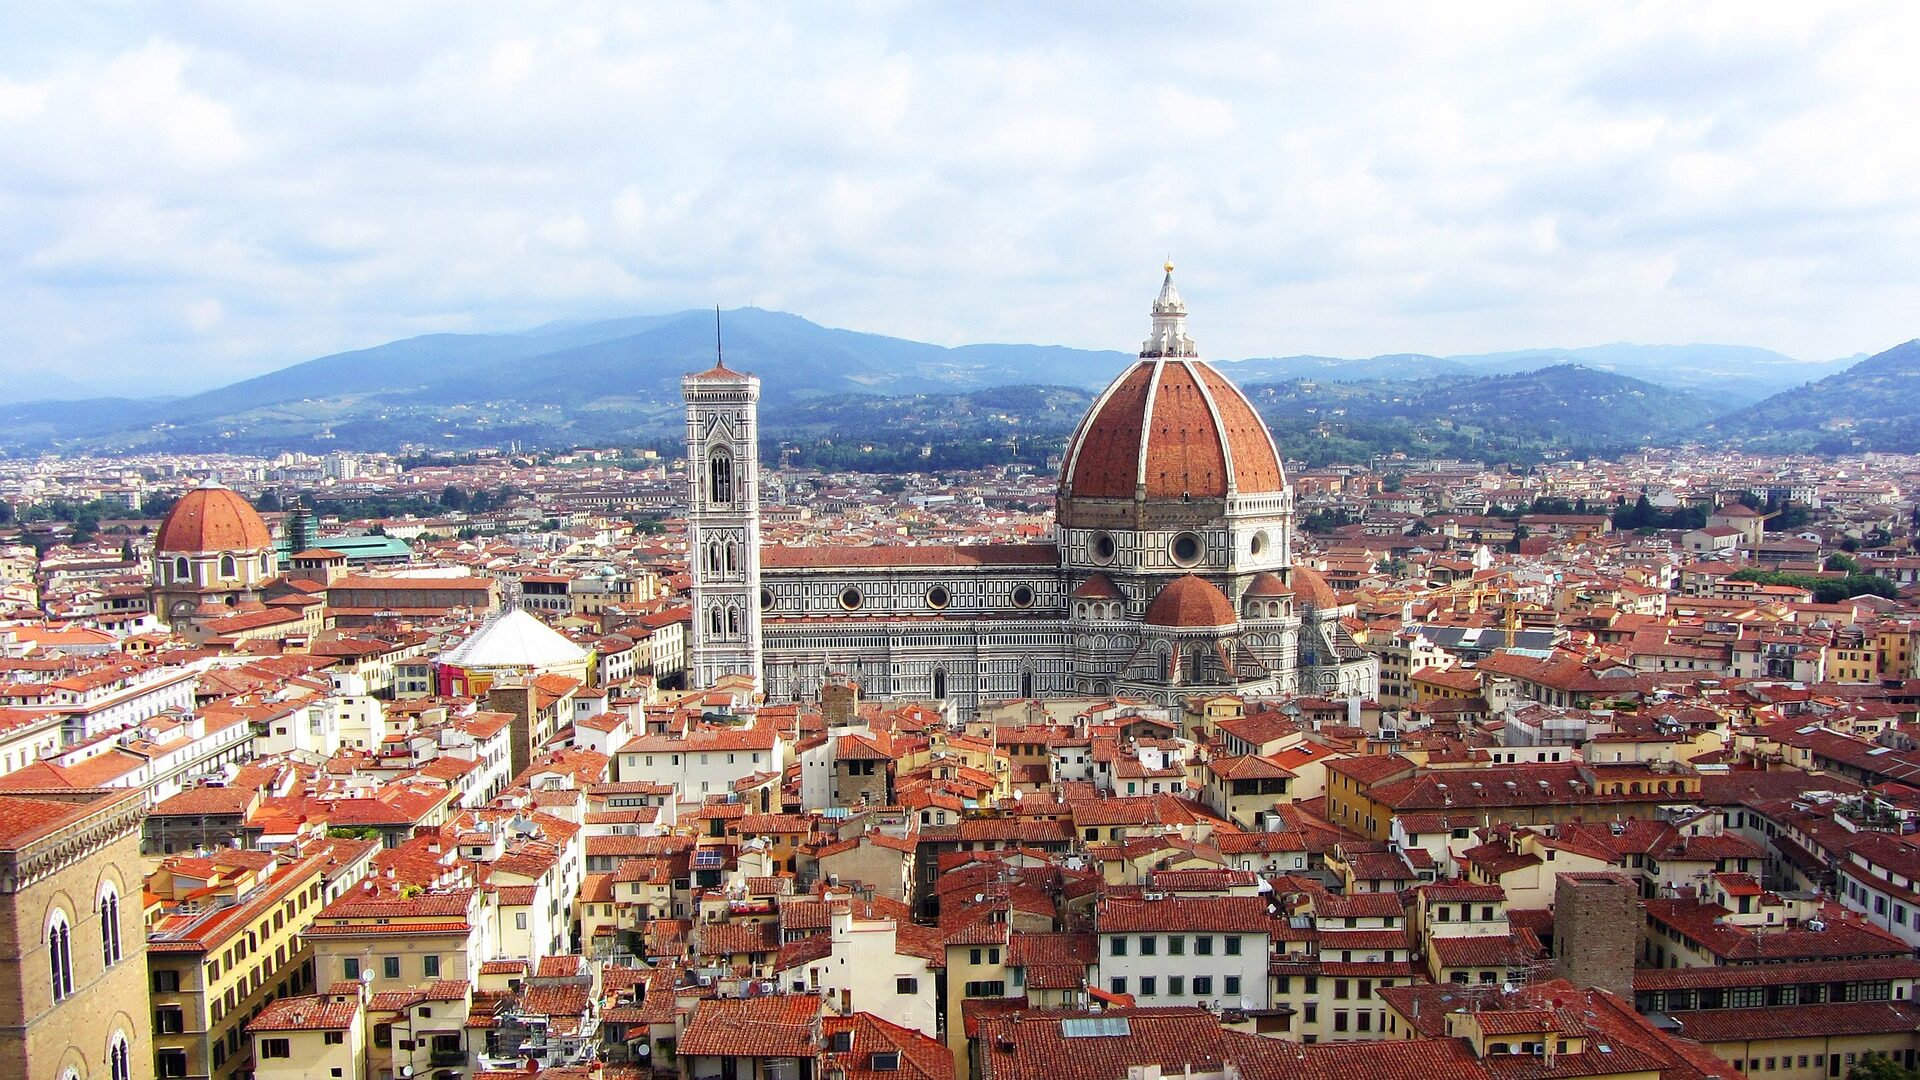 Picture of the Duomo in Florence or Firenze